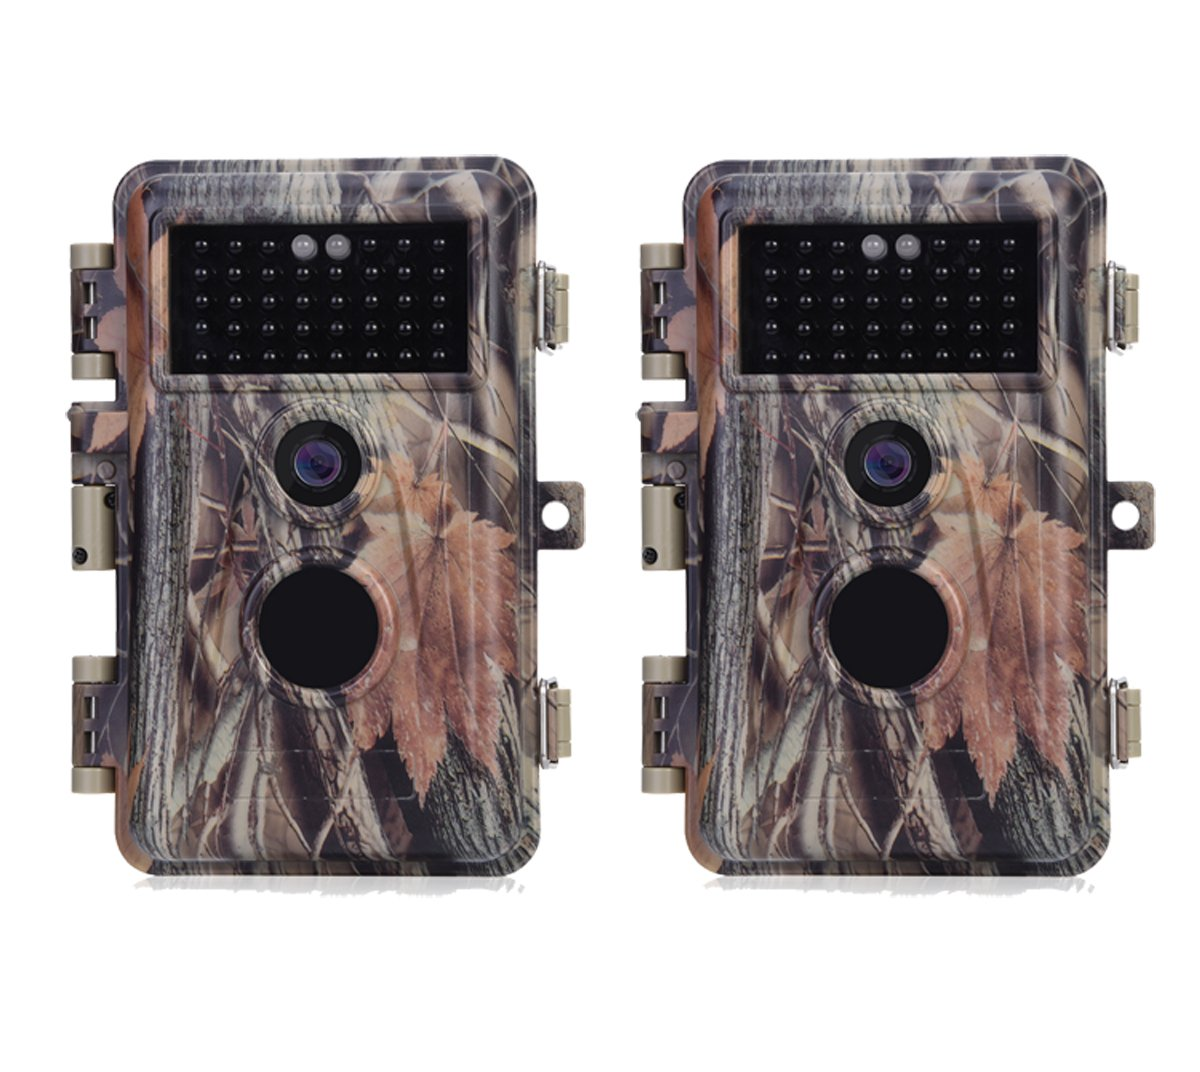 BlazeVideo 16MP 1080P Trail Hunting Wildlife Camera Camouflage, Hunter Scouting Game Cam Motion Sensor Activated Waterproof with Night Vision 38pcs IR LEDs Up to 65ft, Video Record, Snapshot, 2.4 LCD Screen 2.4 LCD Screen BVDLXJGRAY